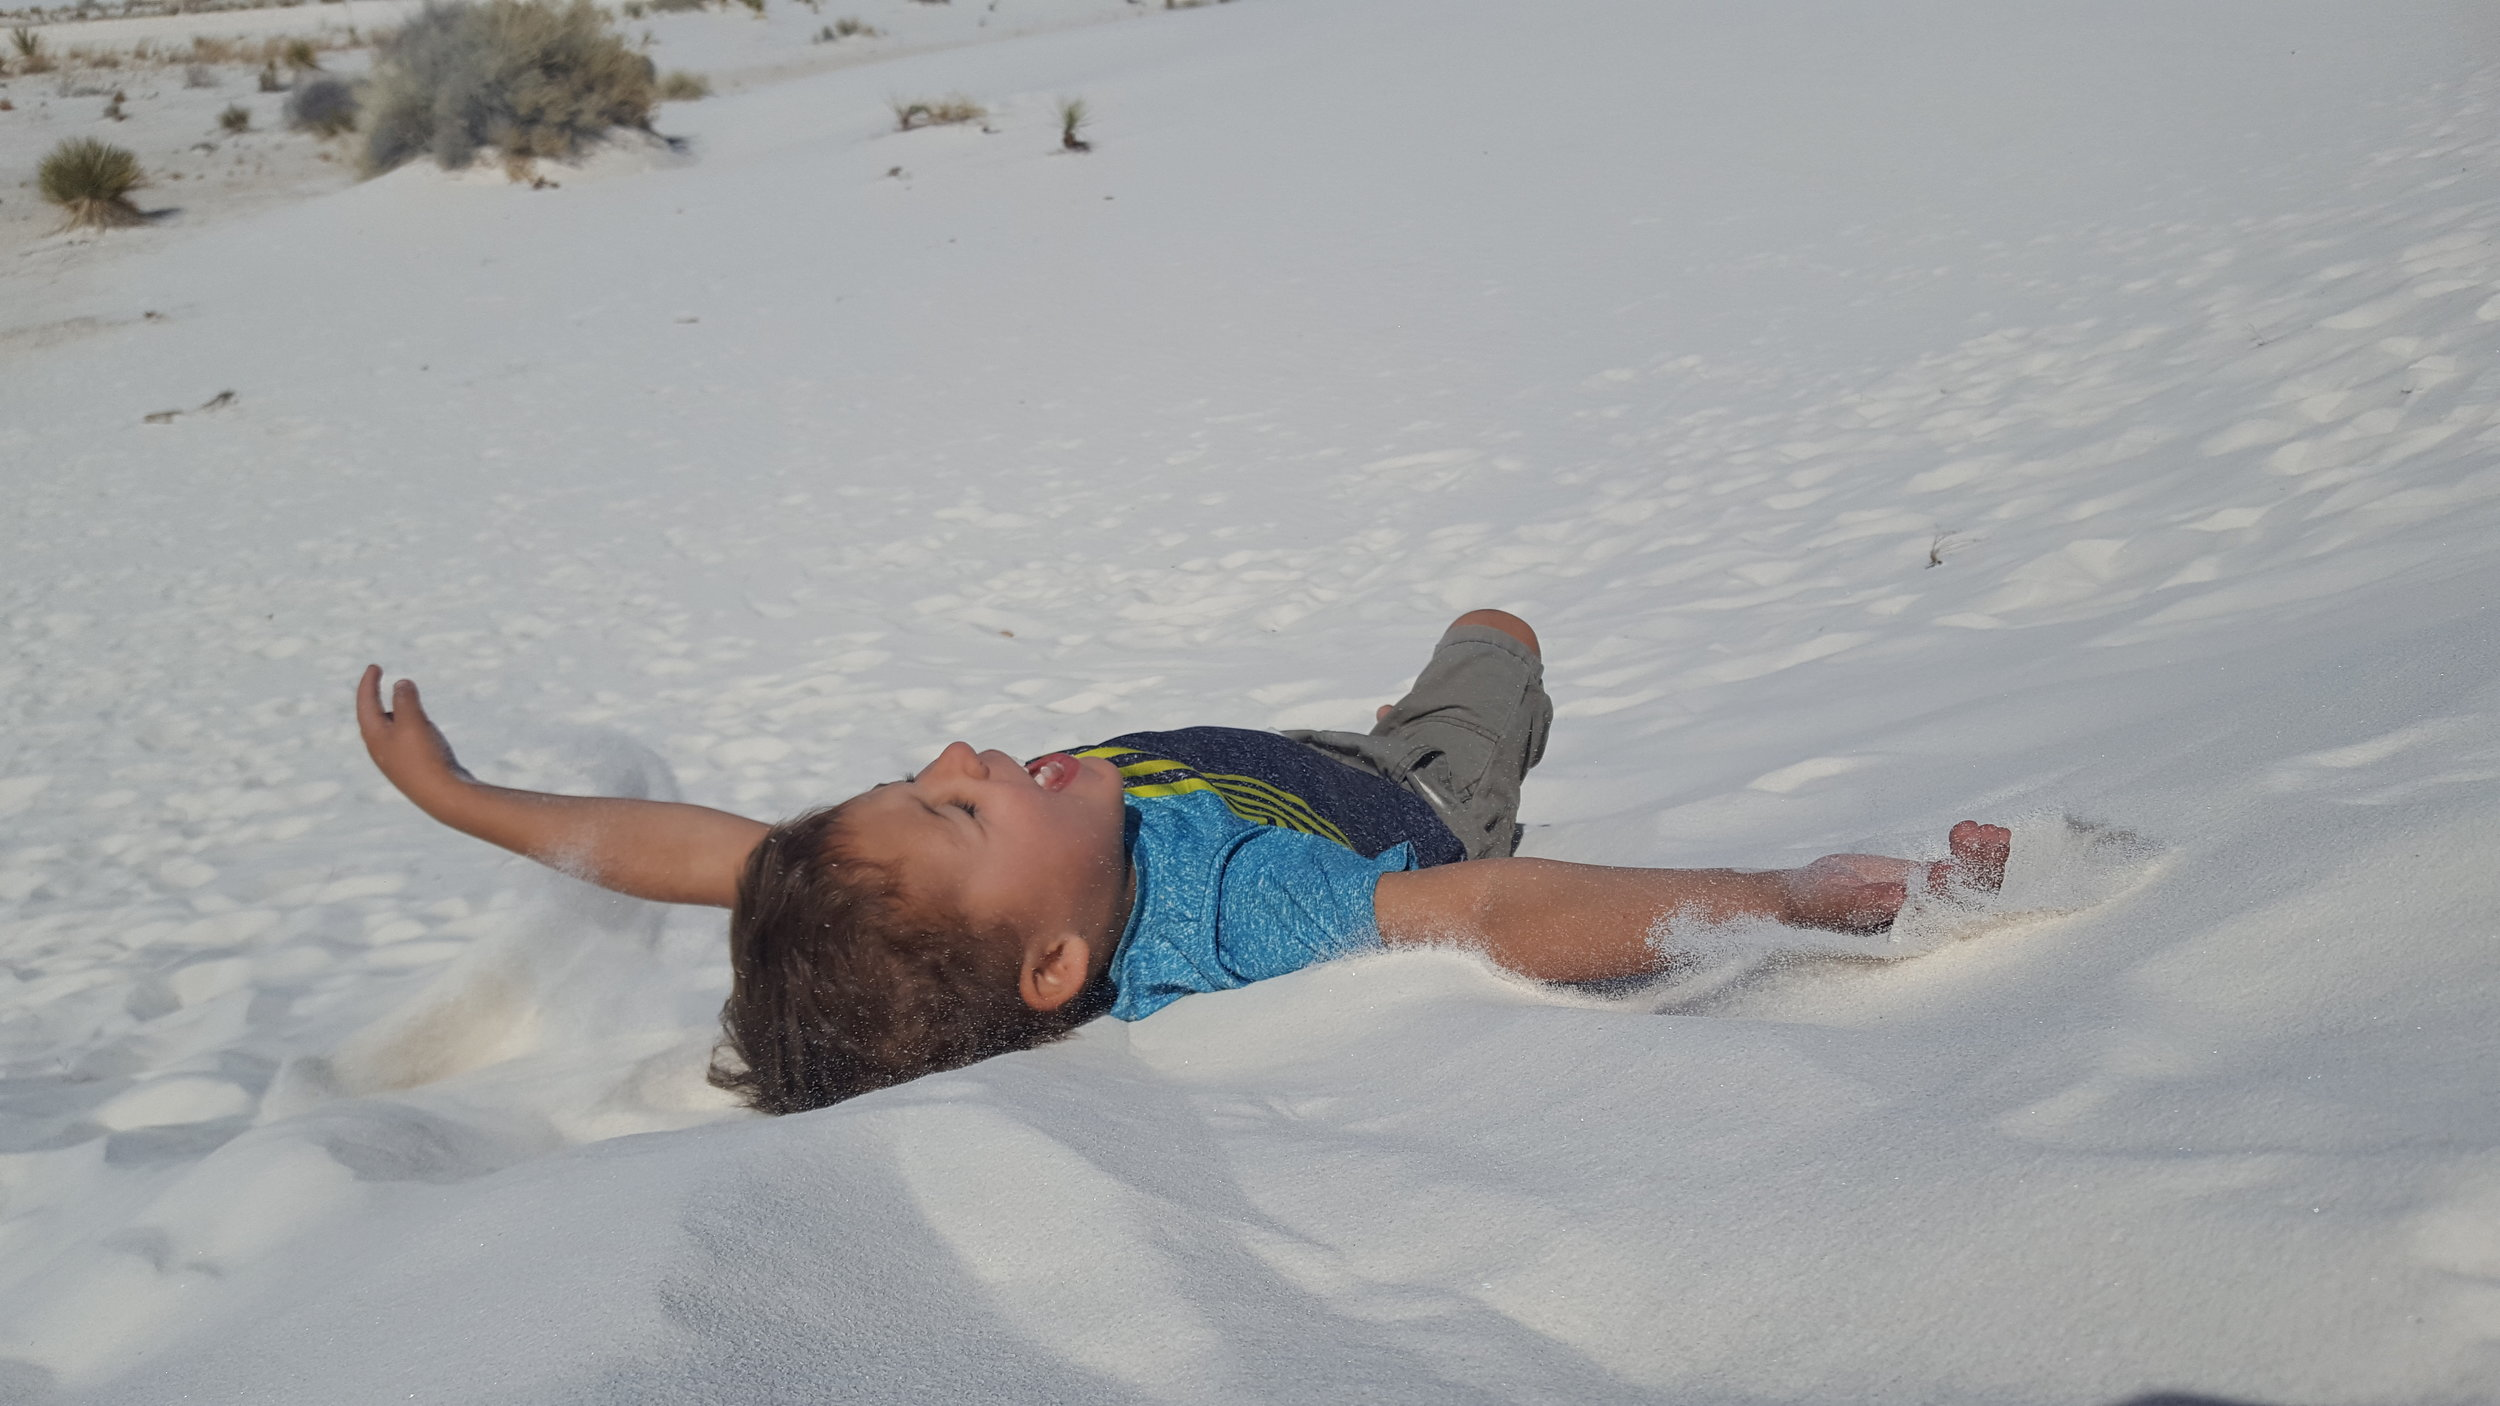 Rolling in the sand and getting it in every crevice of your body is totally acceptable.